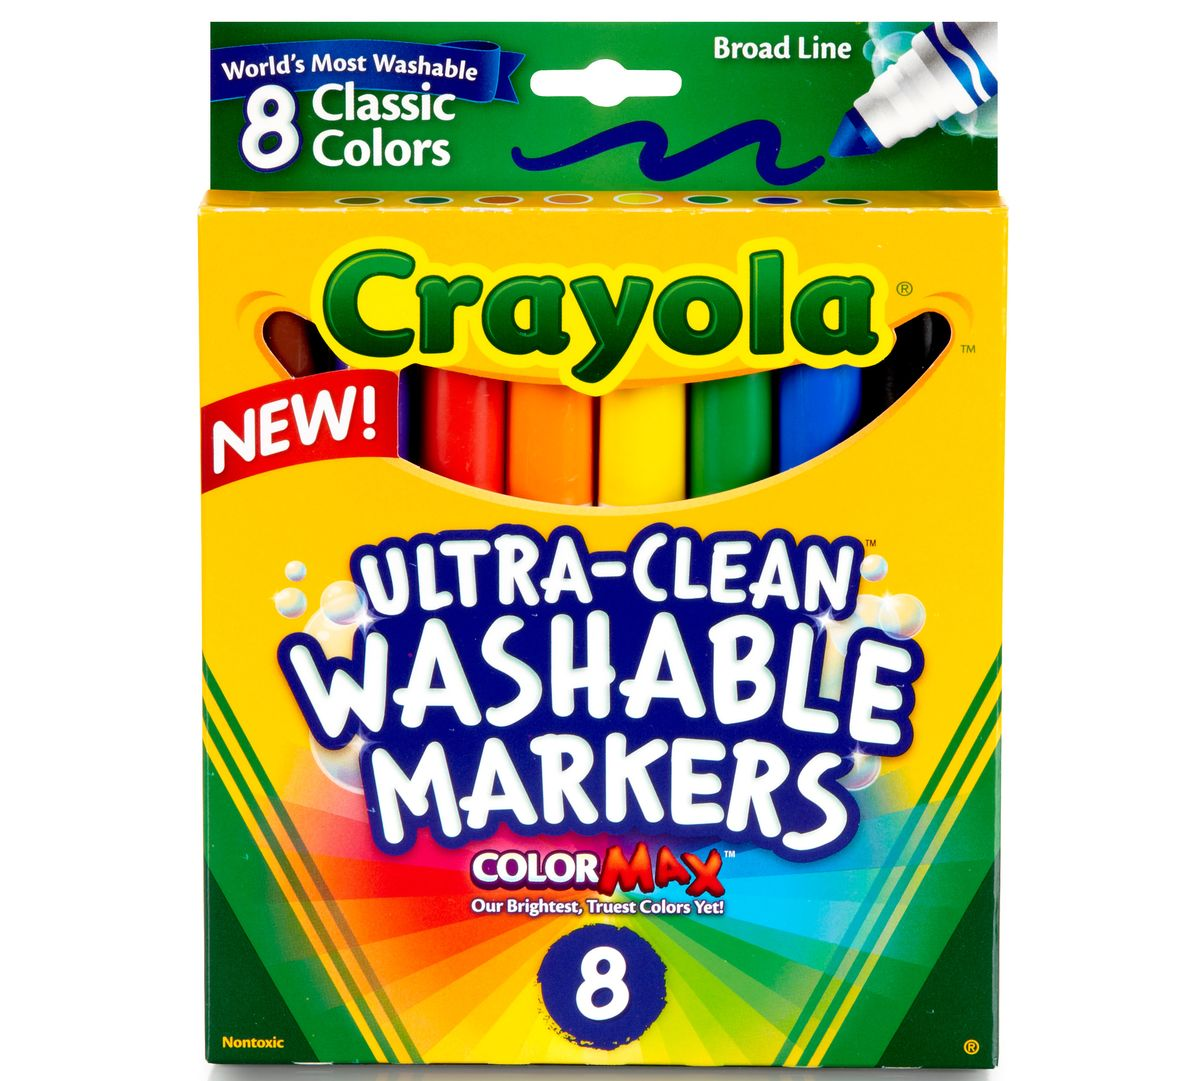 (1) Box of Washable Markers - Approximate Cost $1.99